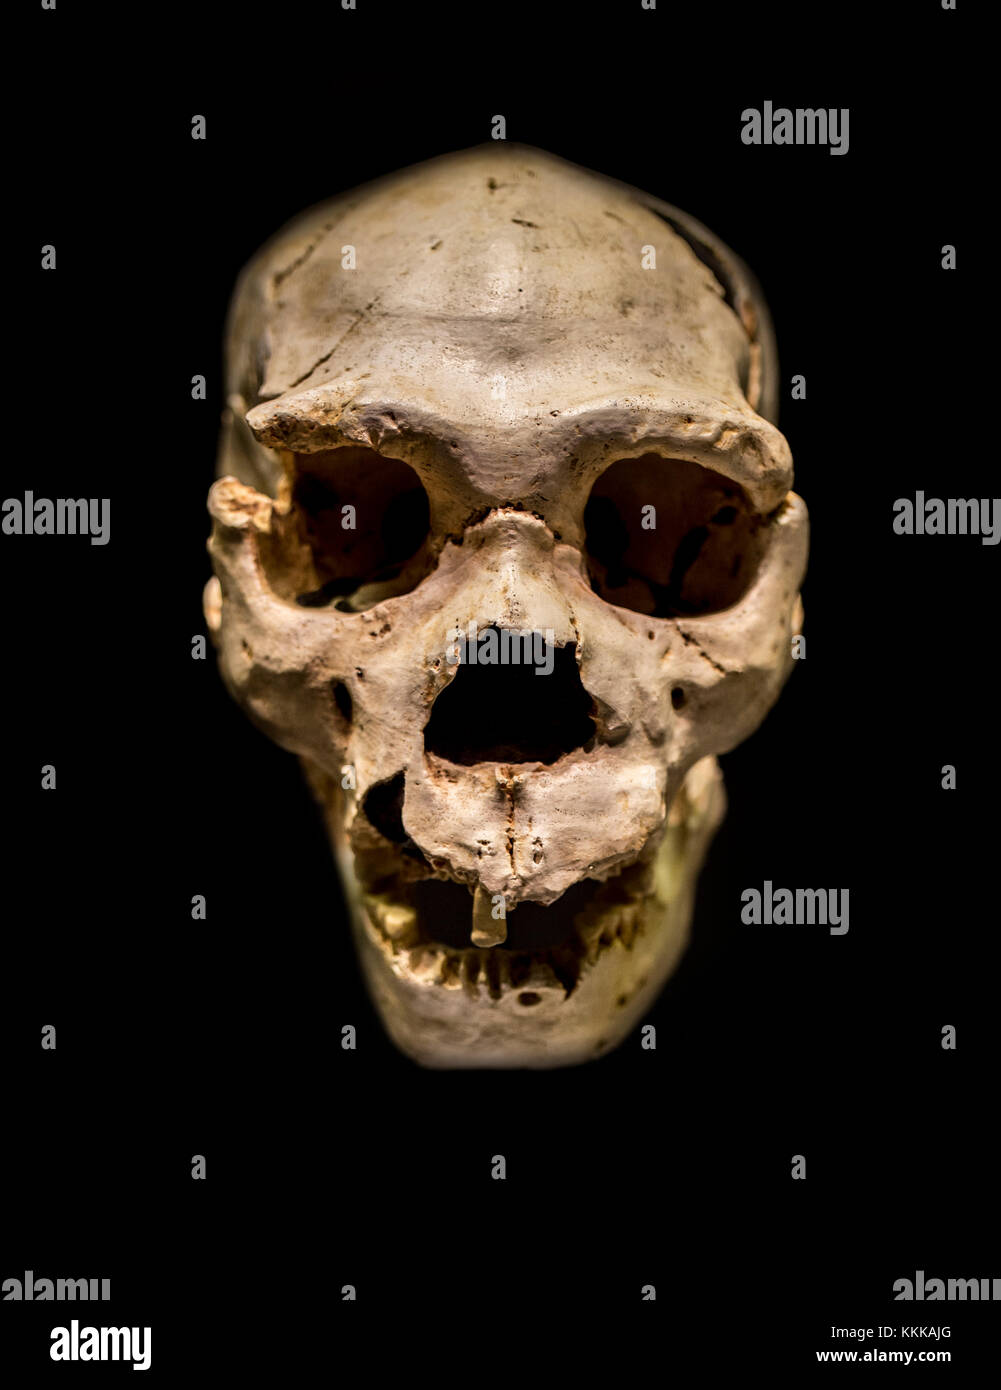 Miguelon, nickname for the most complete skull of an Homo heidelbergensis ever found. Found at Atapuerta Sima de - Stock Image